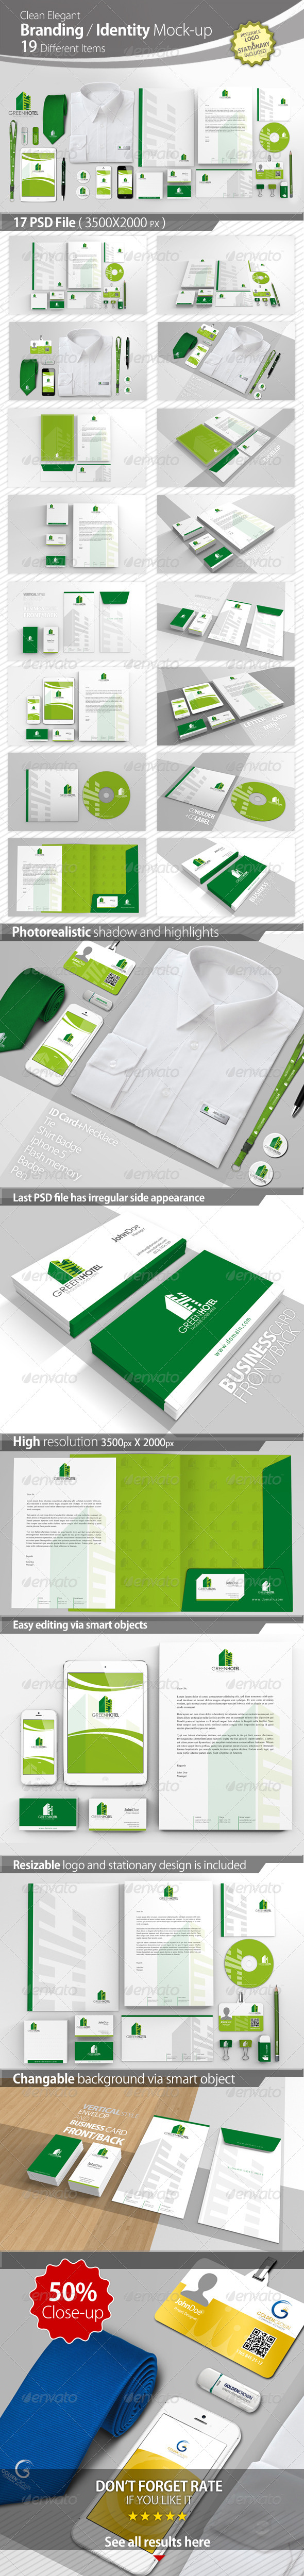 GraphicRiver Branding Identity Mock-up 4450939